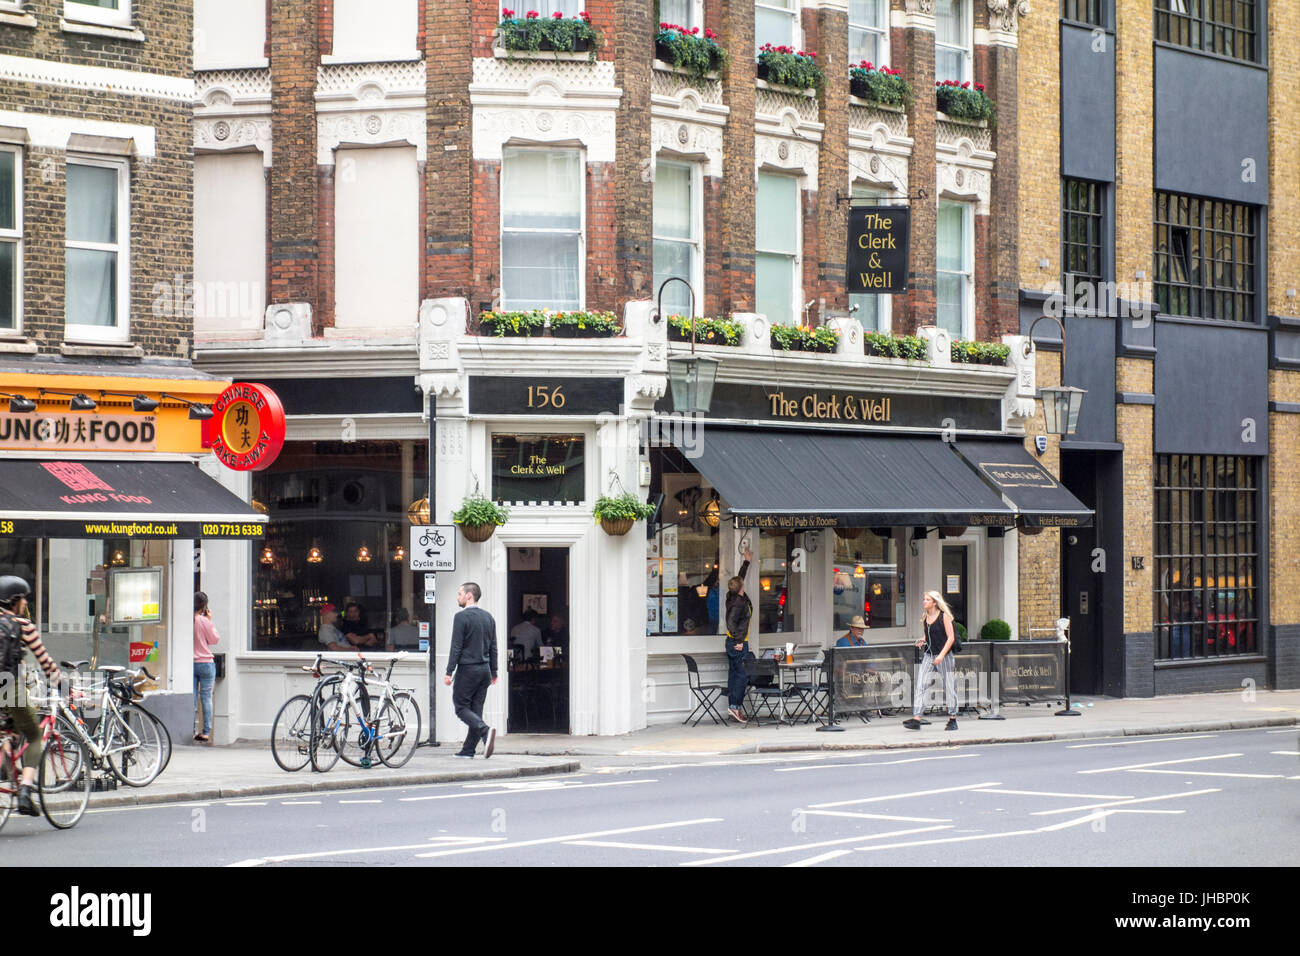 The Clerk & Well pub public house bar, Clerkenwell, London, UK - Stock Image